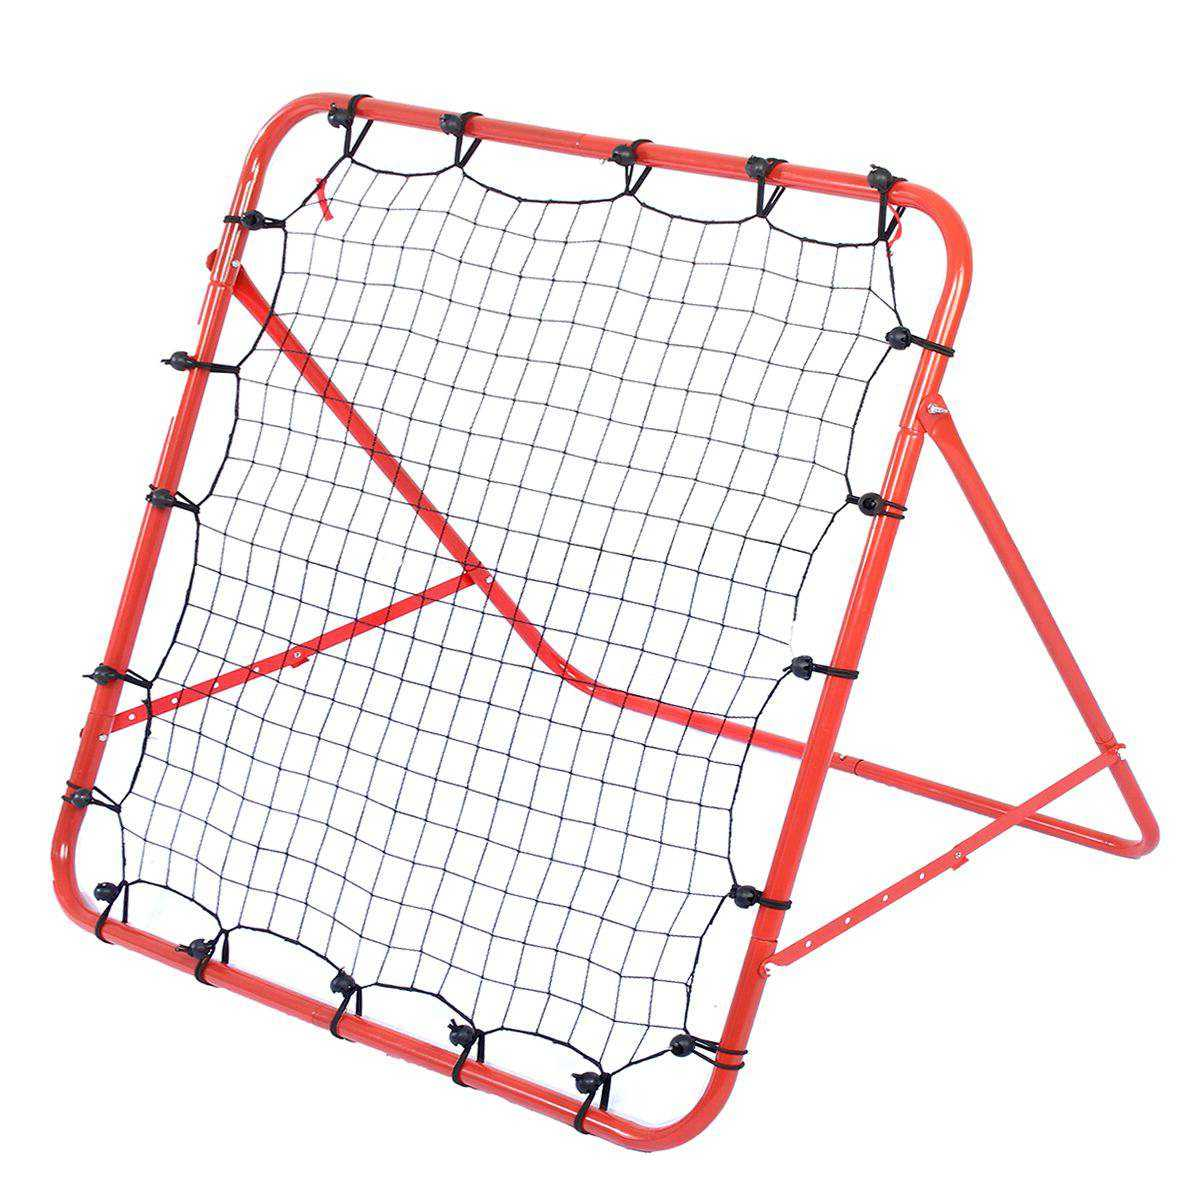 Soccer Football Rebound Target Net Adjustable Kickback Training Goal Training Aid Tool